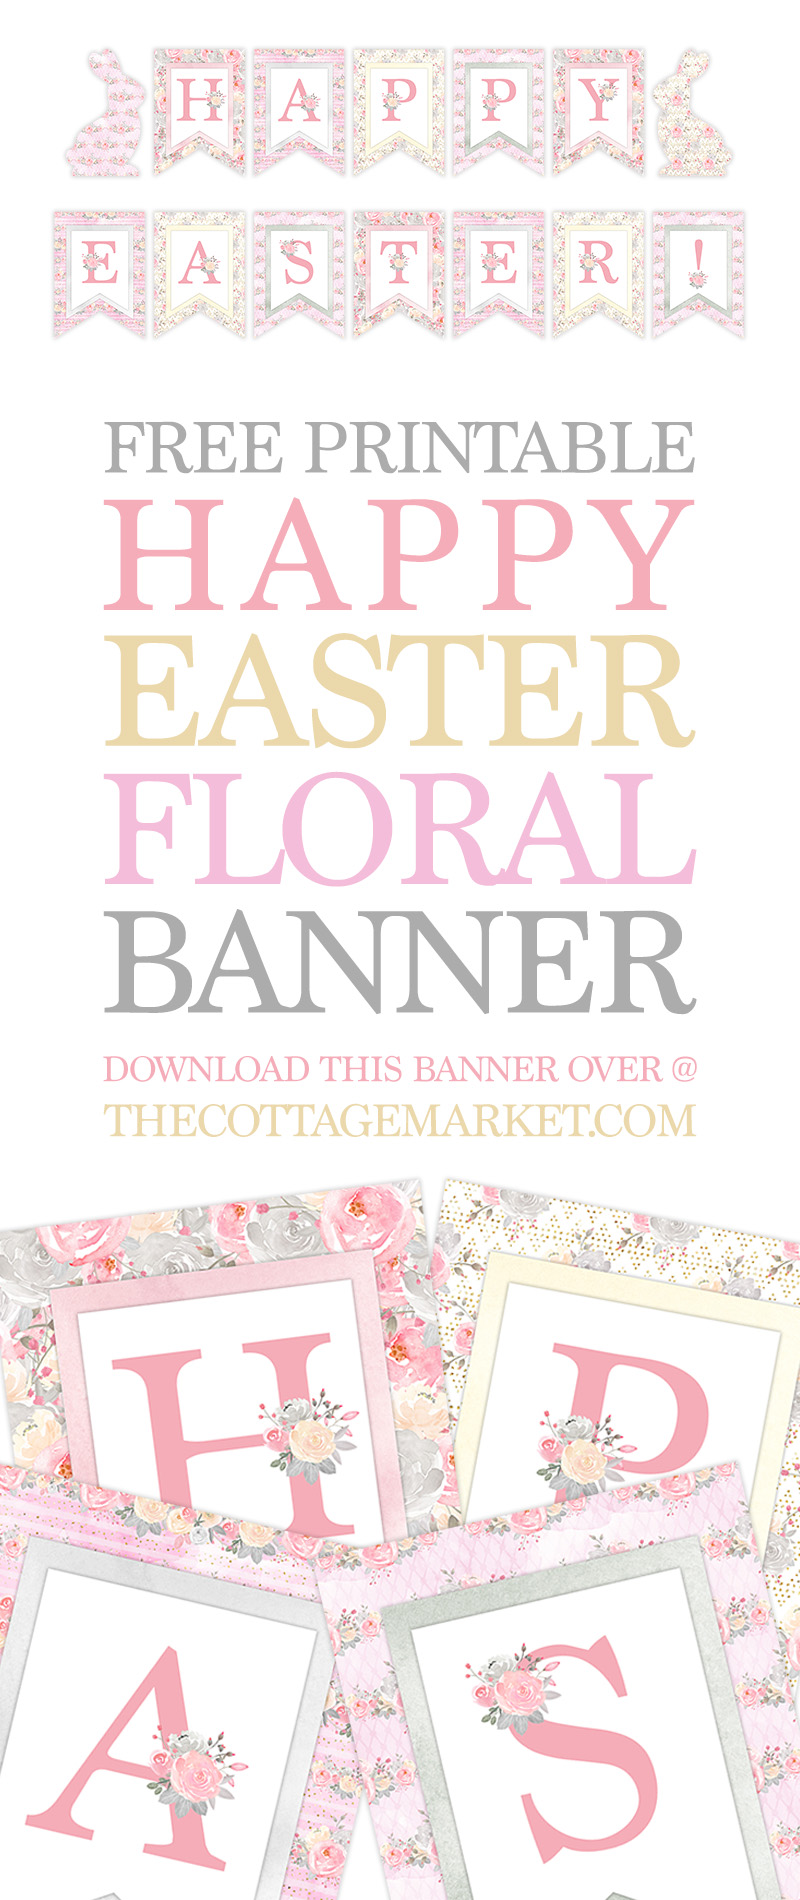 photo about Happy Easter Banner Printable titled No cost Printable Pleased Easter Floral Banner - The Cottage Sector